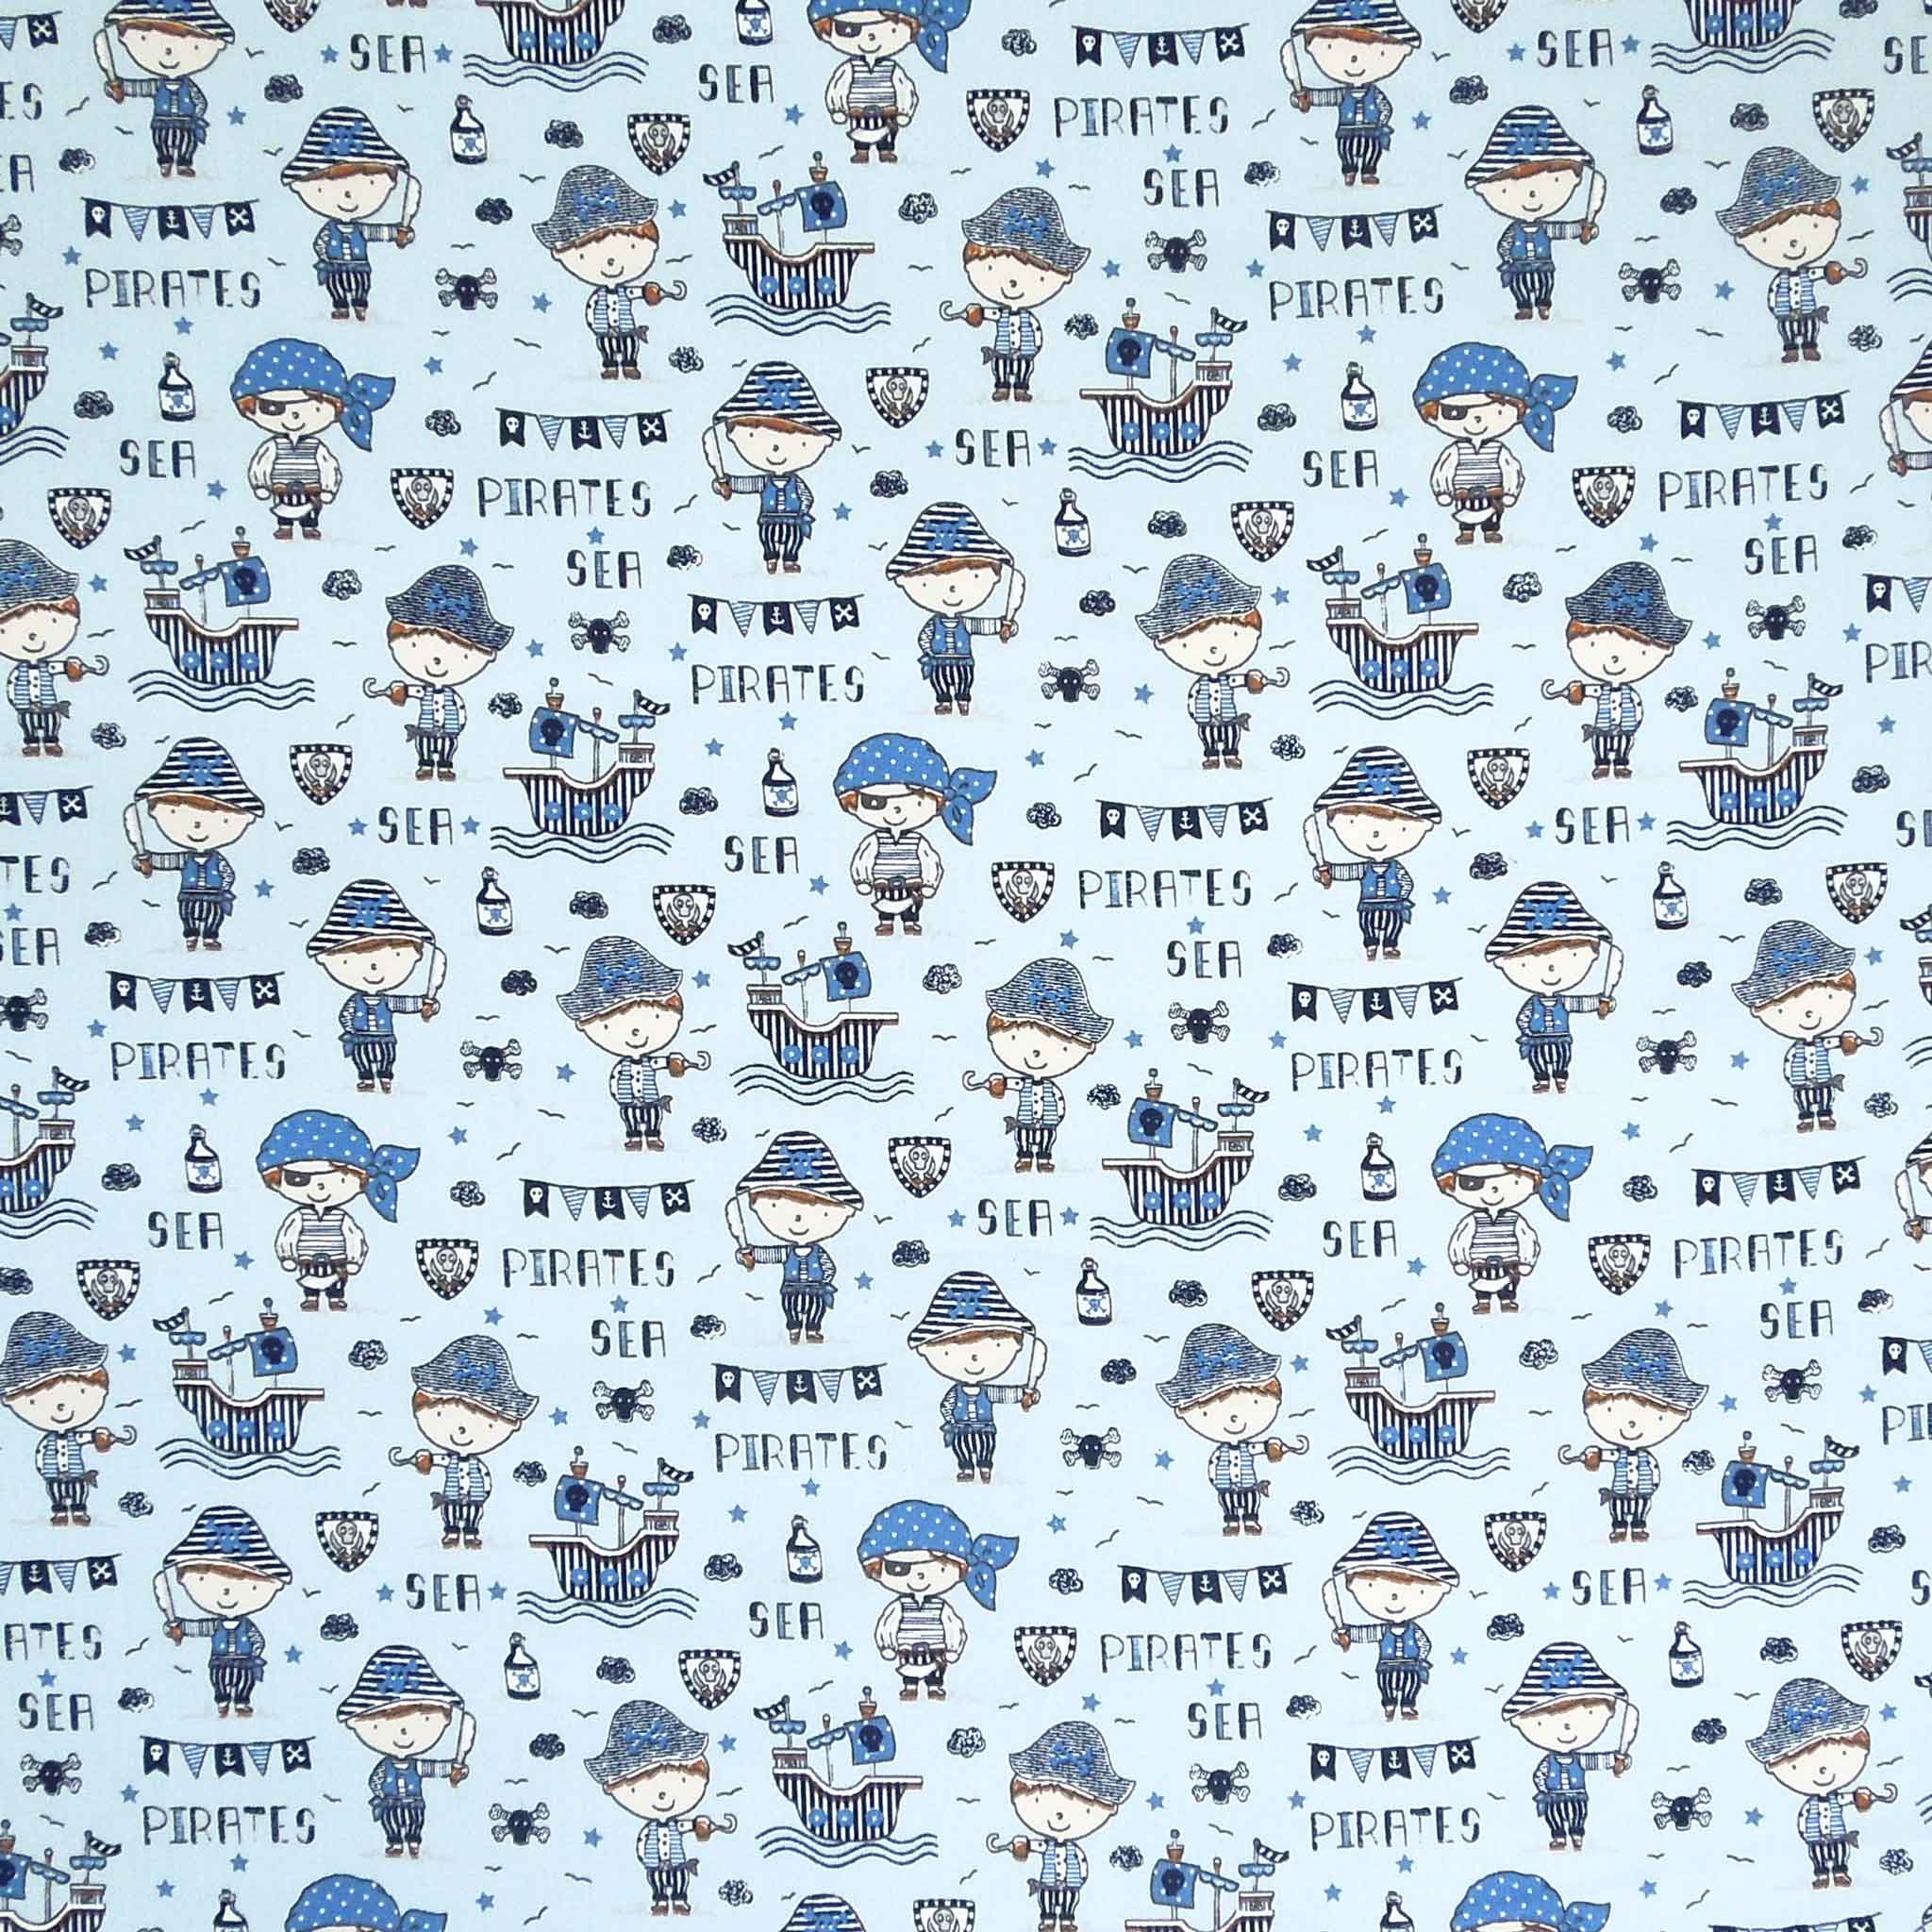 Blue Sea Pirates Cotton Fabric, Kid's Pirates and Galleons Cotton Fabric for Sewing and Crafts - Fabric and Ribbon